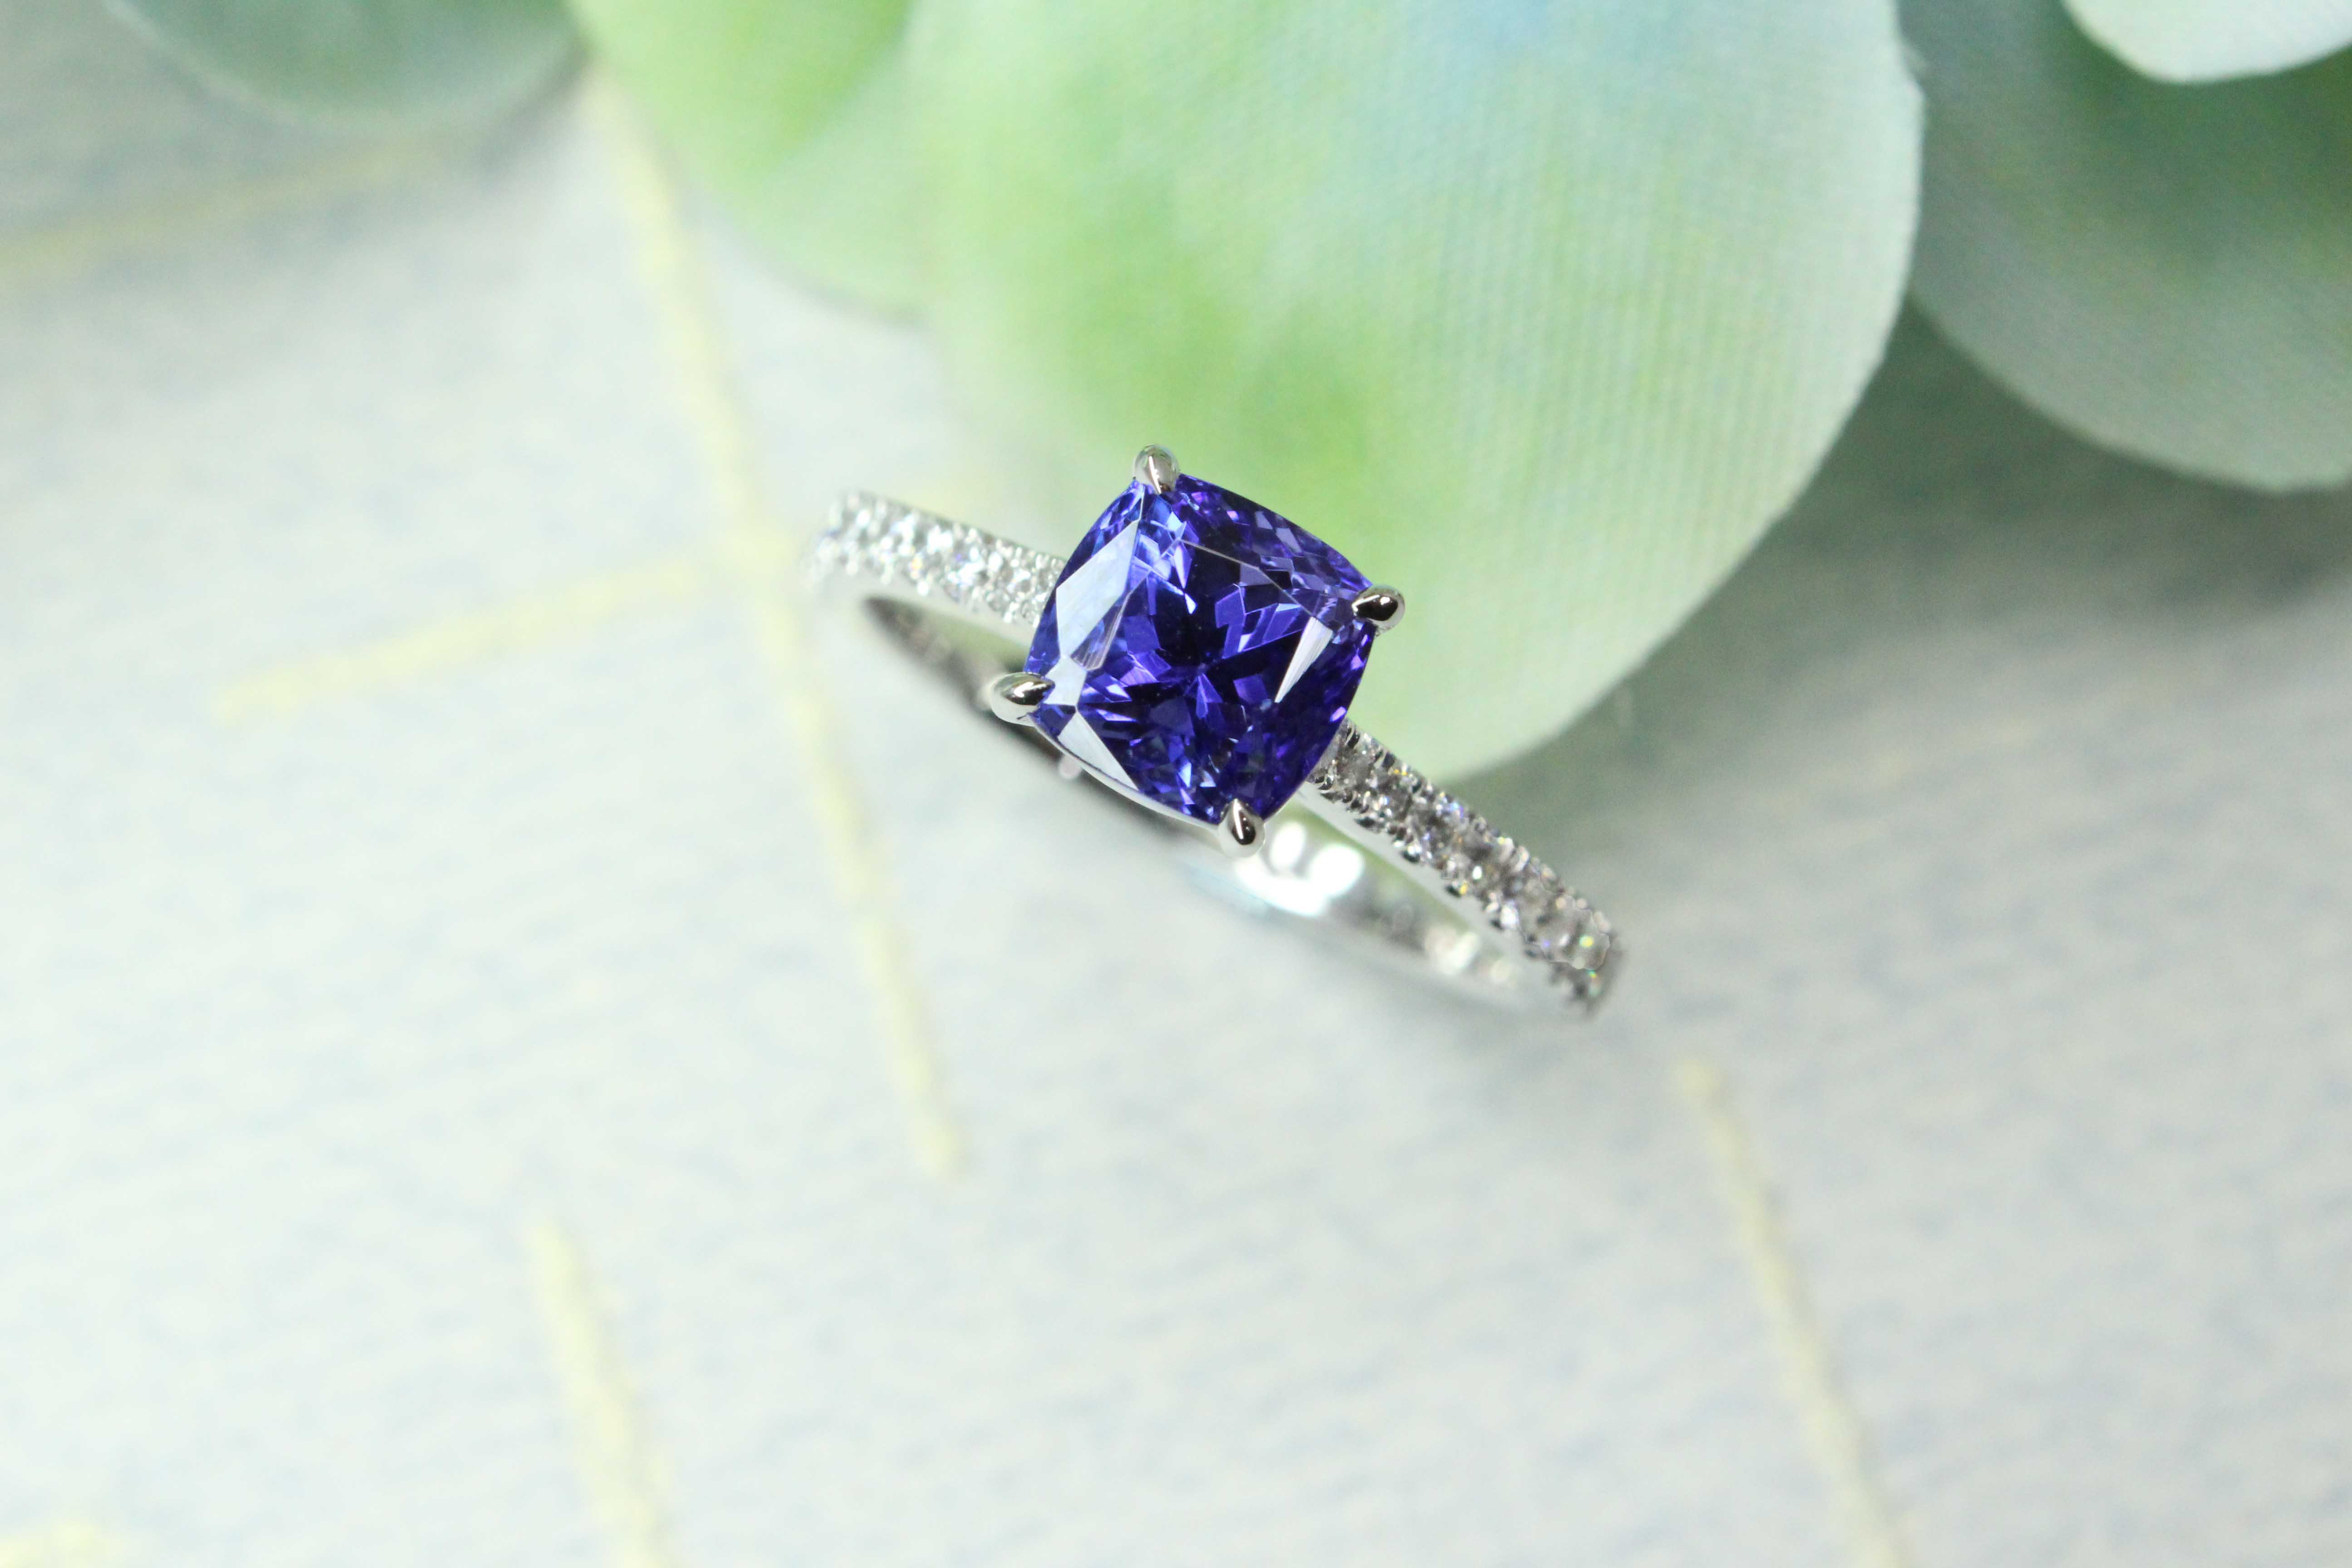 Tanzanite proposal Ring customised with tanzanite coloured gemstone for wedding proposal | Local Singapore Jeweller in customised wedding jewellery